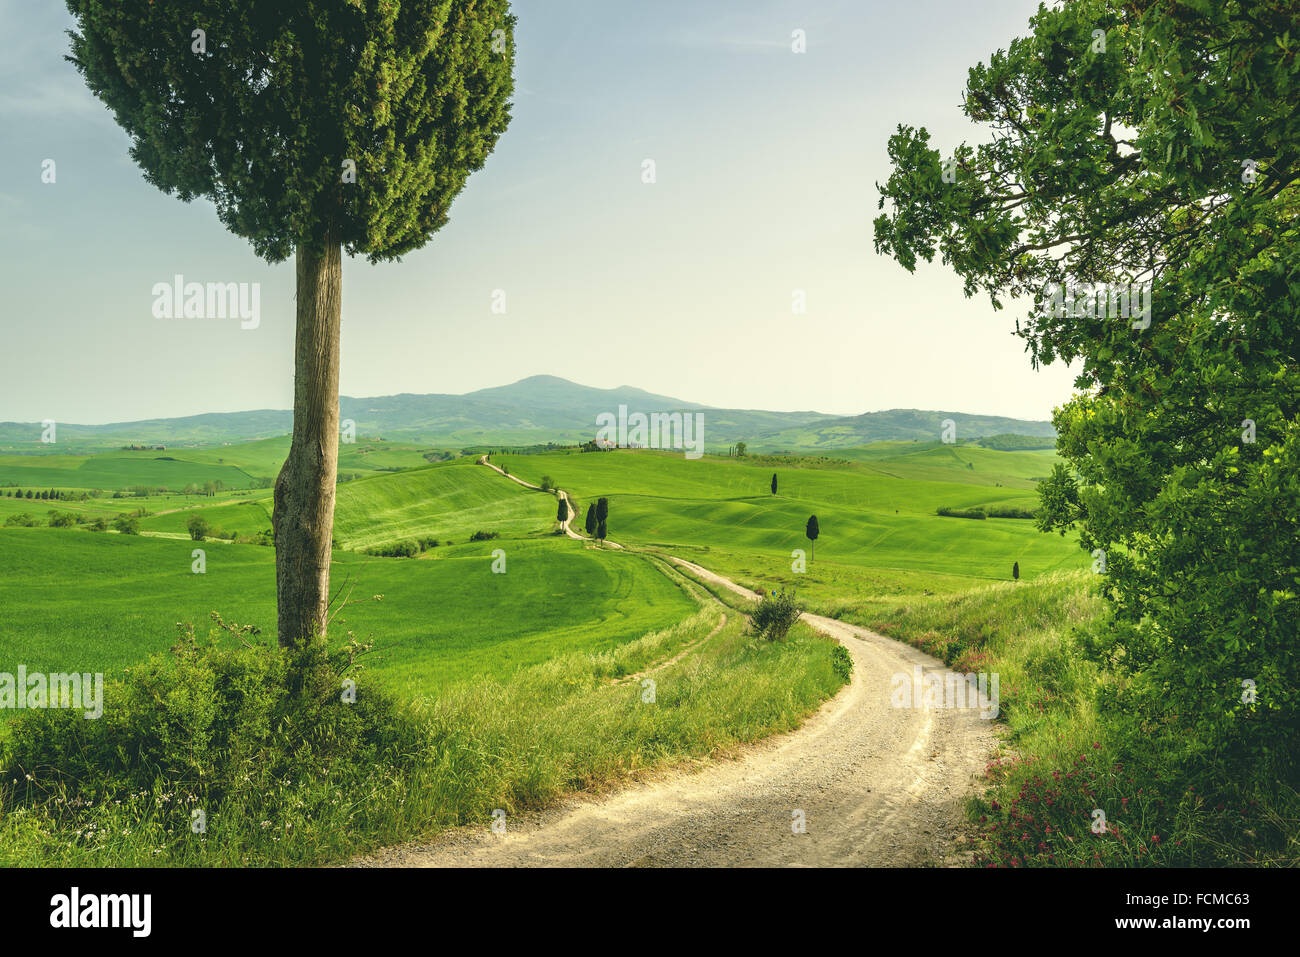 Tuscan place in a rural landscape - Stock Image